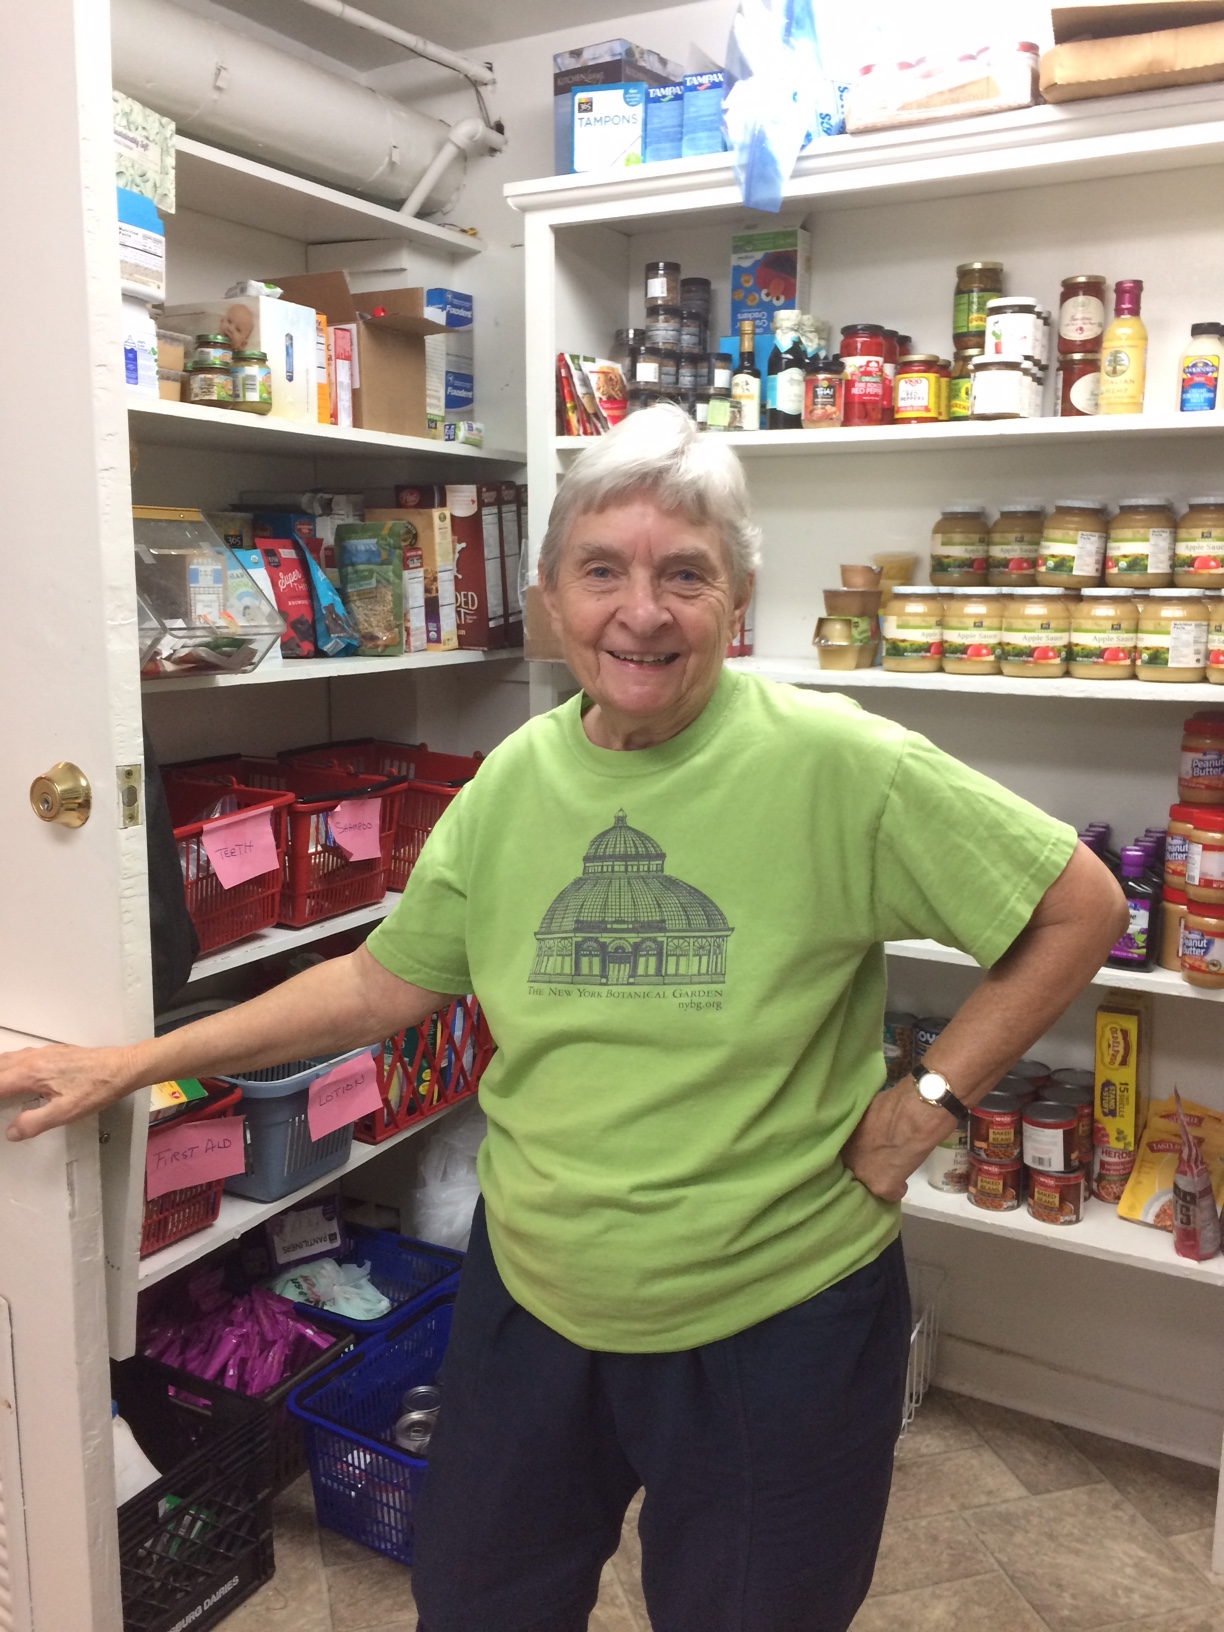 Bobbi is a long-time, committed Samaritan volunteer.